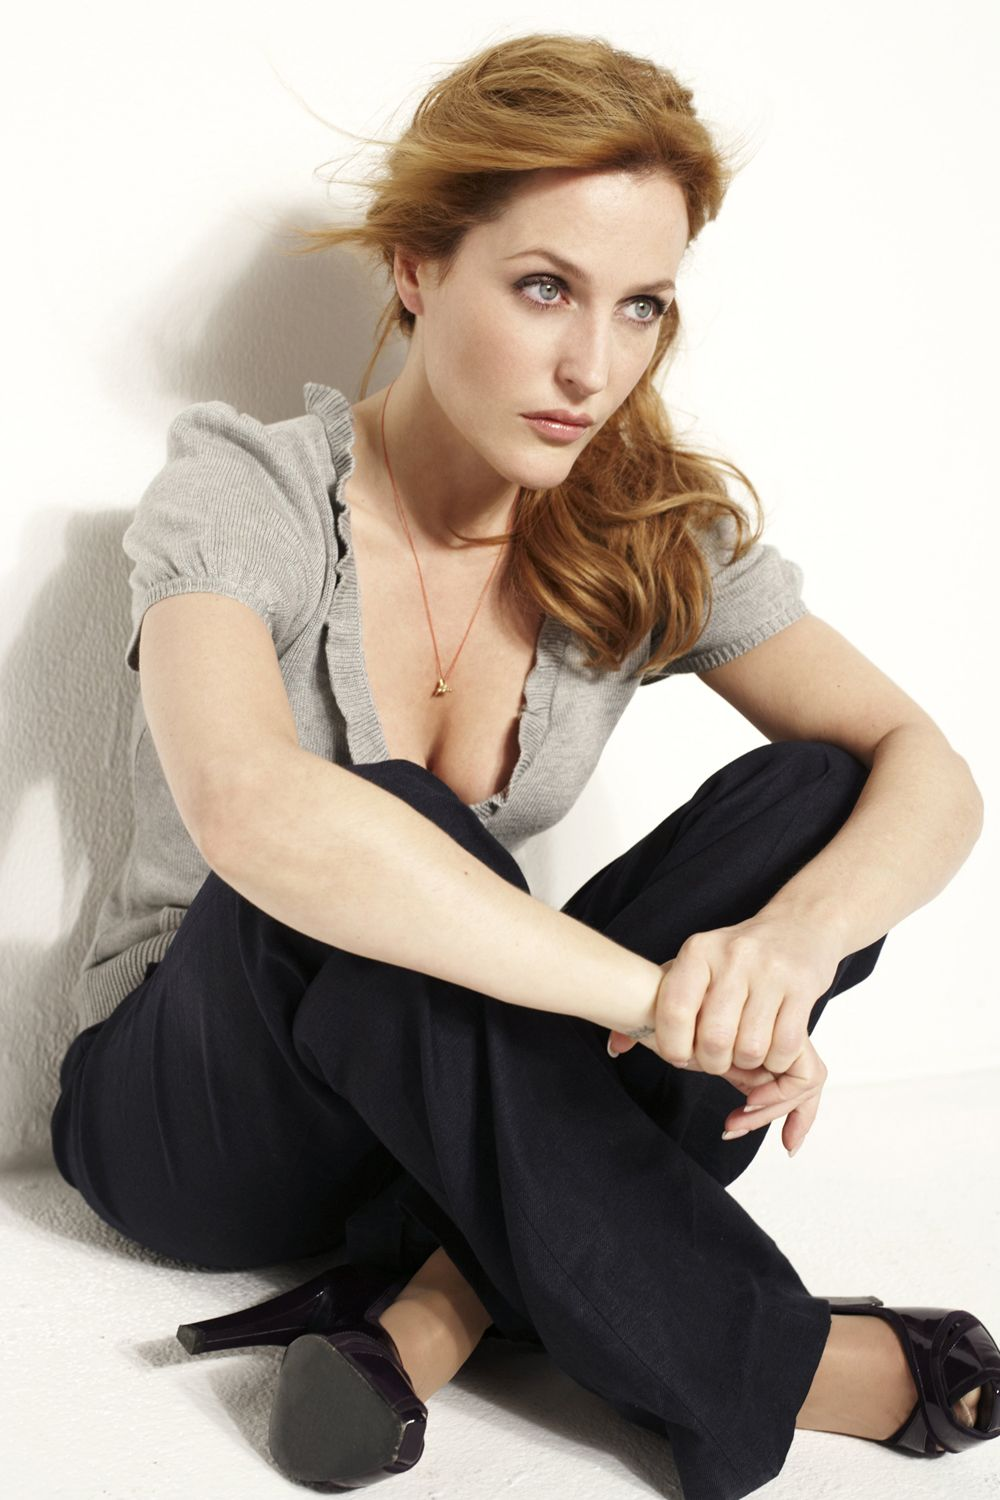 Discussion on this topic: Brittany Lo, gillian-anderson-born-august-9-1968-age/